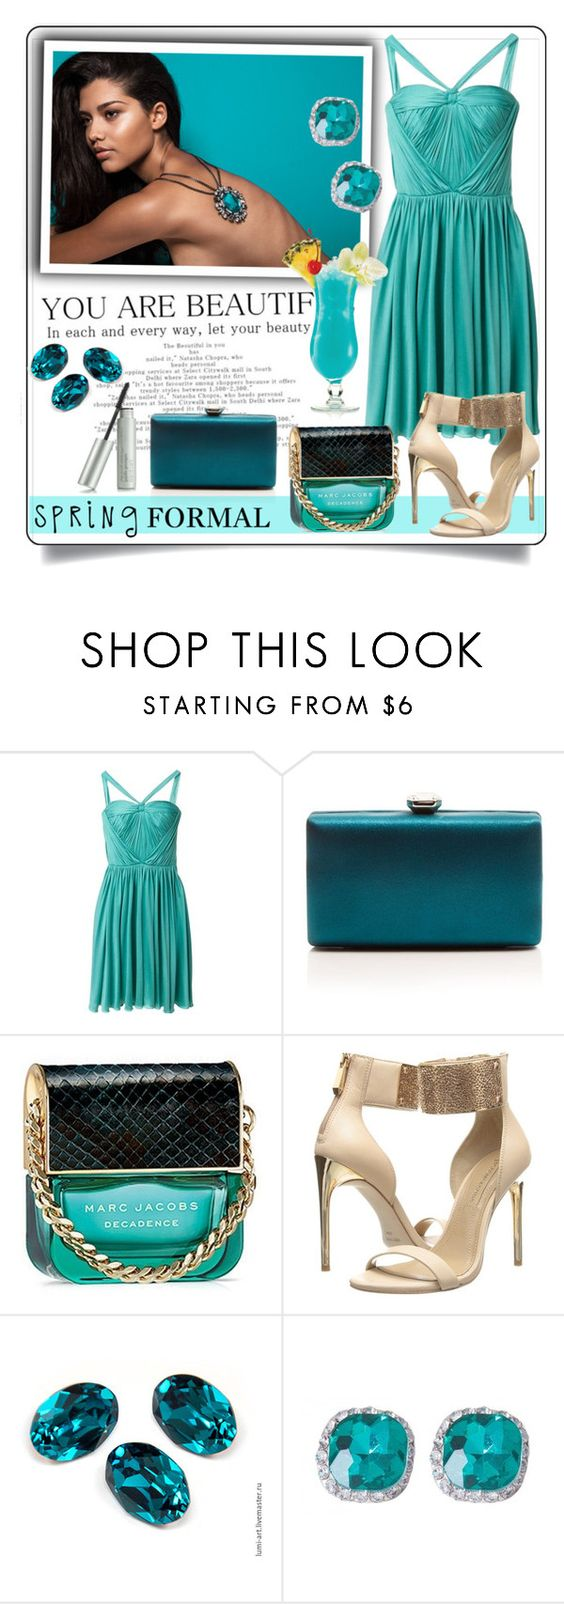 """Spring cocktail"" by anemone-ci ❤ liked on Polyvore featuring Christian Dior, La Regale, Marc Jacobs, BCBGMAXAZRIA and springformal"